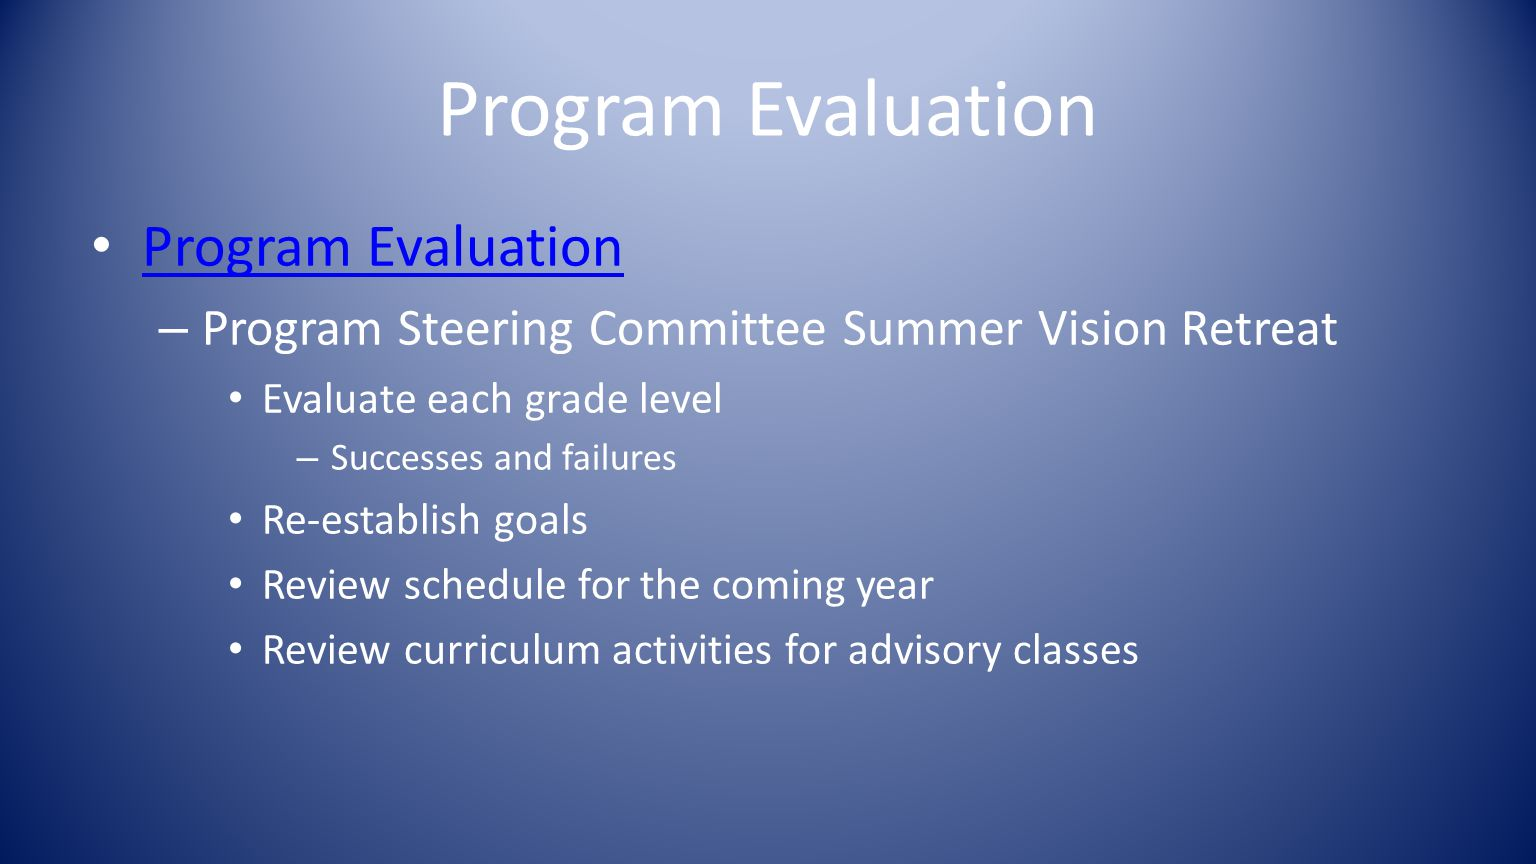 Program Evaluation – Program Steering Committee Summer Vision Retreat Evaluate each grade level – Successes and failures Re-establish goals Review schedule for the coming year Review curriculum activities for advisory classes